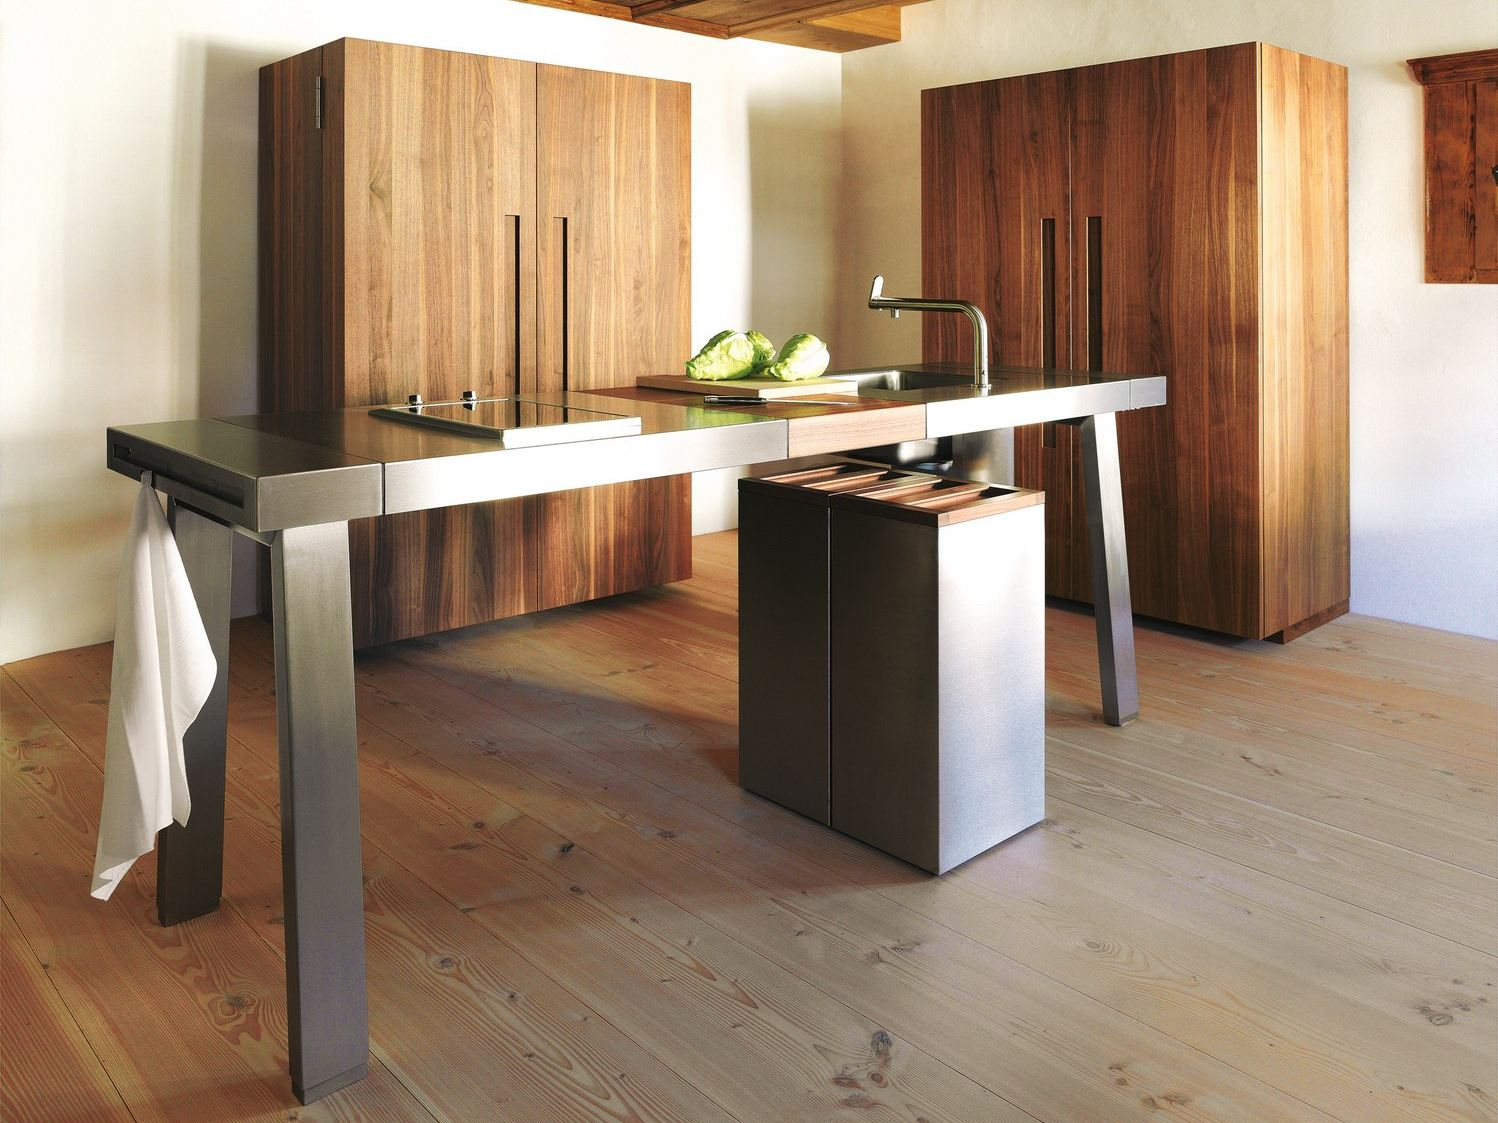 Bulthaup B2 Fitted Kitchen B2 By Bulthaup Design Eoos